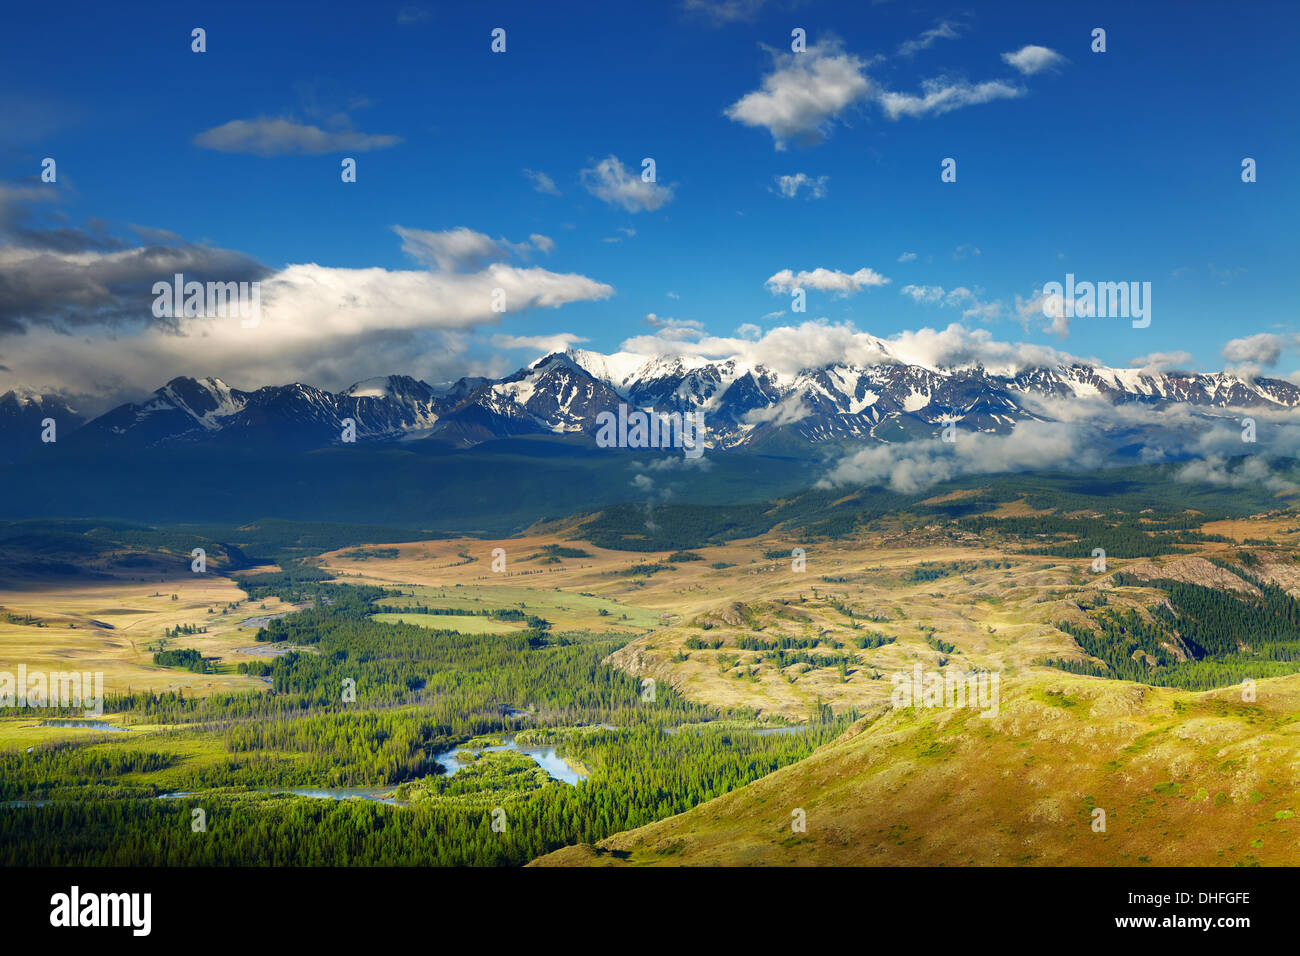 Mountain landscape with   and snowy peaks - Stock Image